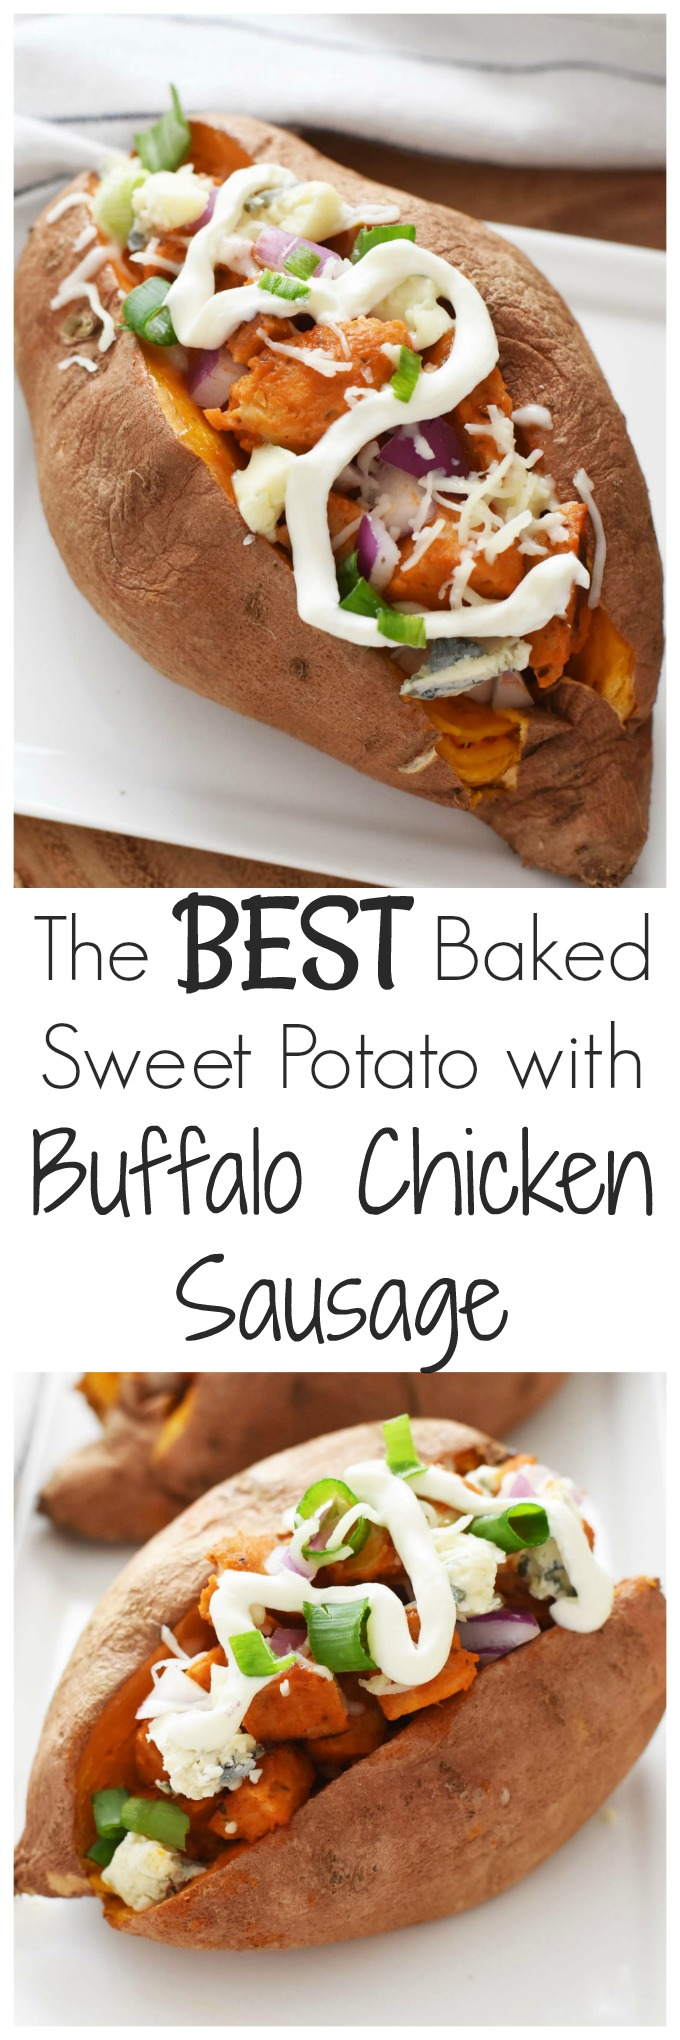 The Best Baked Sweet Potato with Buffalo Chicken Sausage- The Best Baked Sweet Potato with Buffalo Chicken Sausage- We have lighten up the classic flavors of Buffalo chicken & added them into a sweet potato. Dressed with green onion, non fat Greek yogurt, a light sprinkling of cheese, & a hint of fresh Gorgonzola, this is one stuffed potato you do not want to miss!! #eatalfresco AD